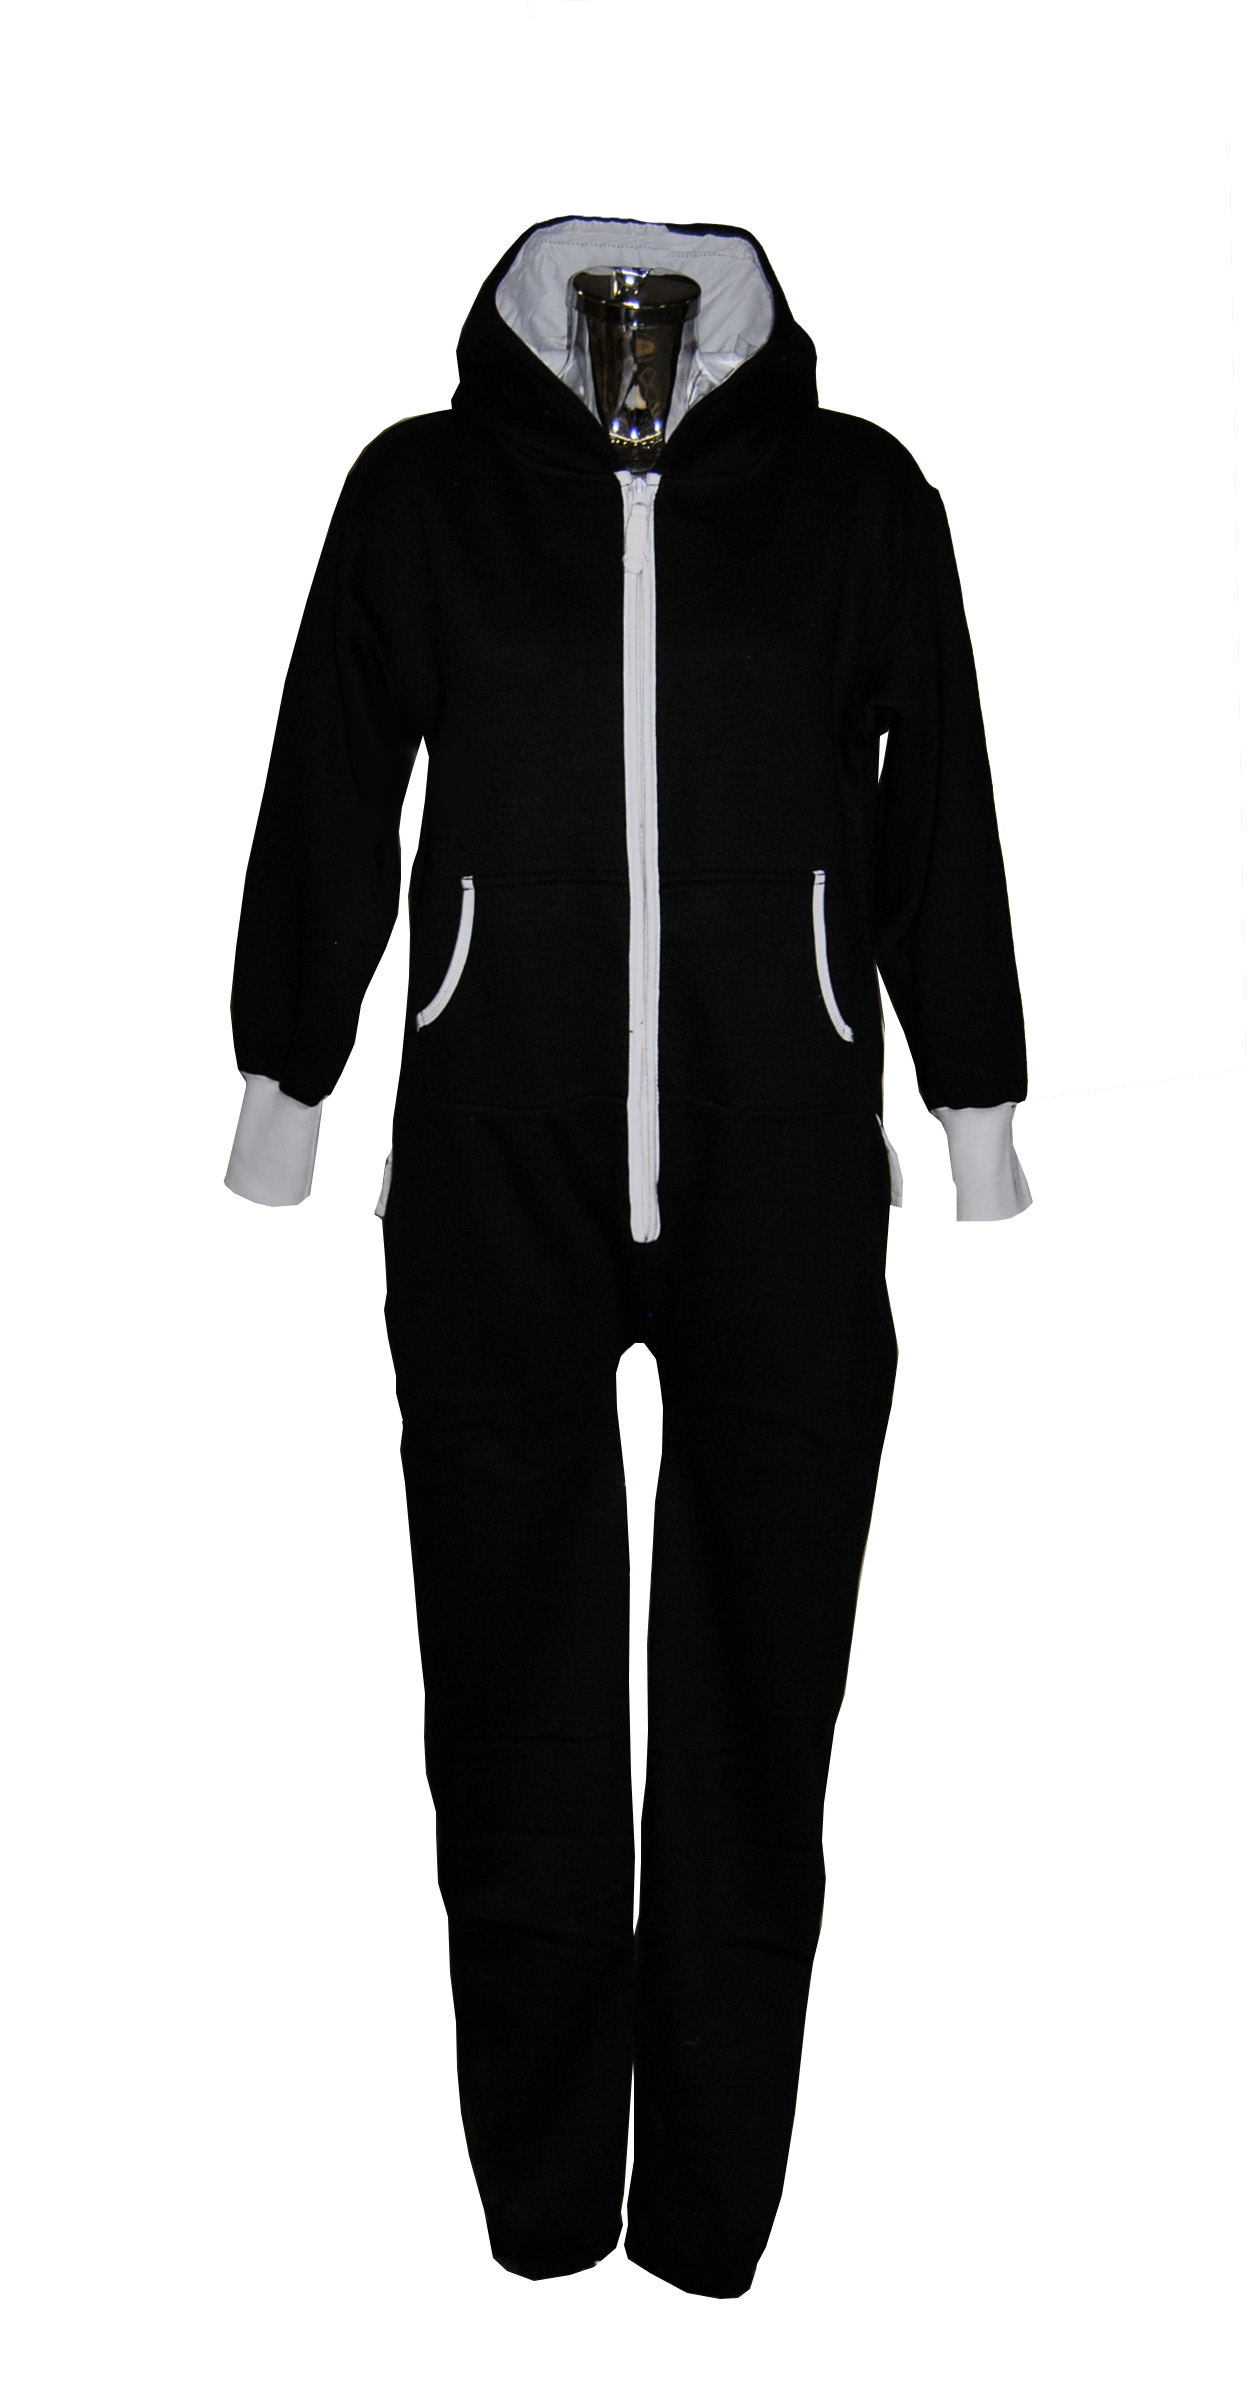 plain onesies for adults